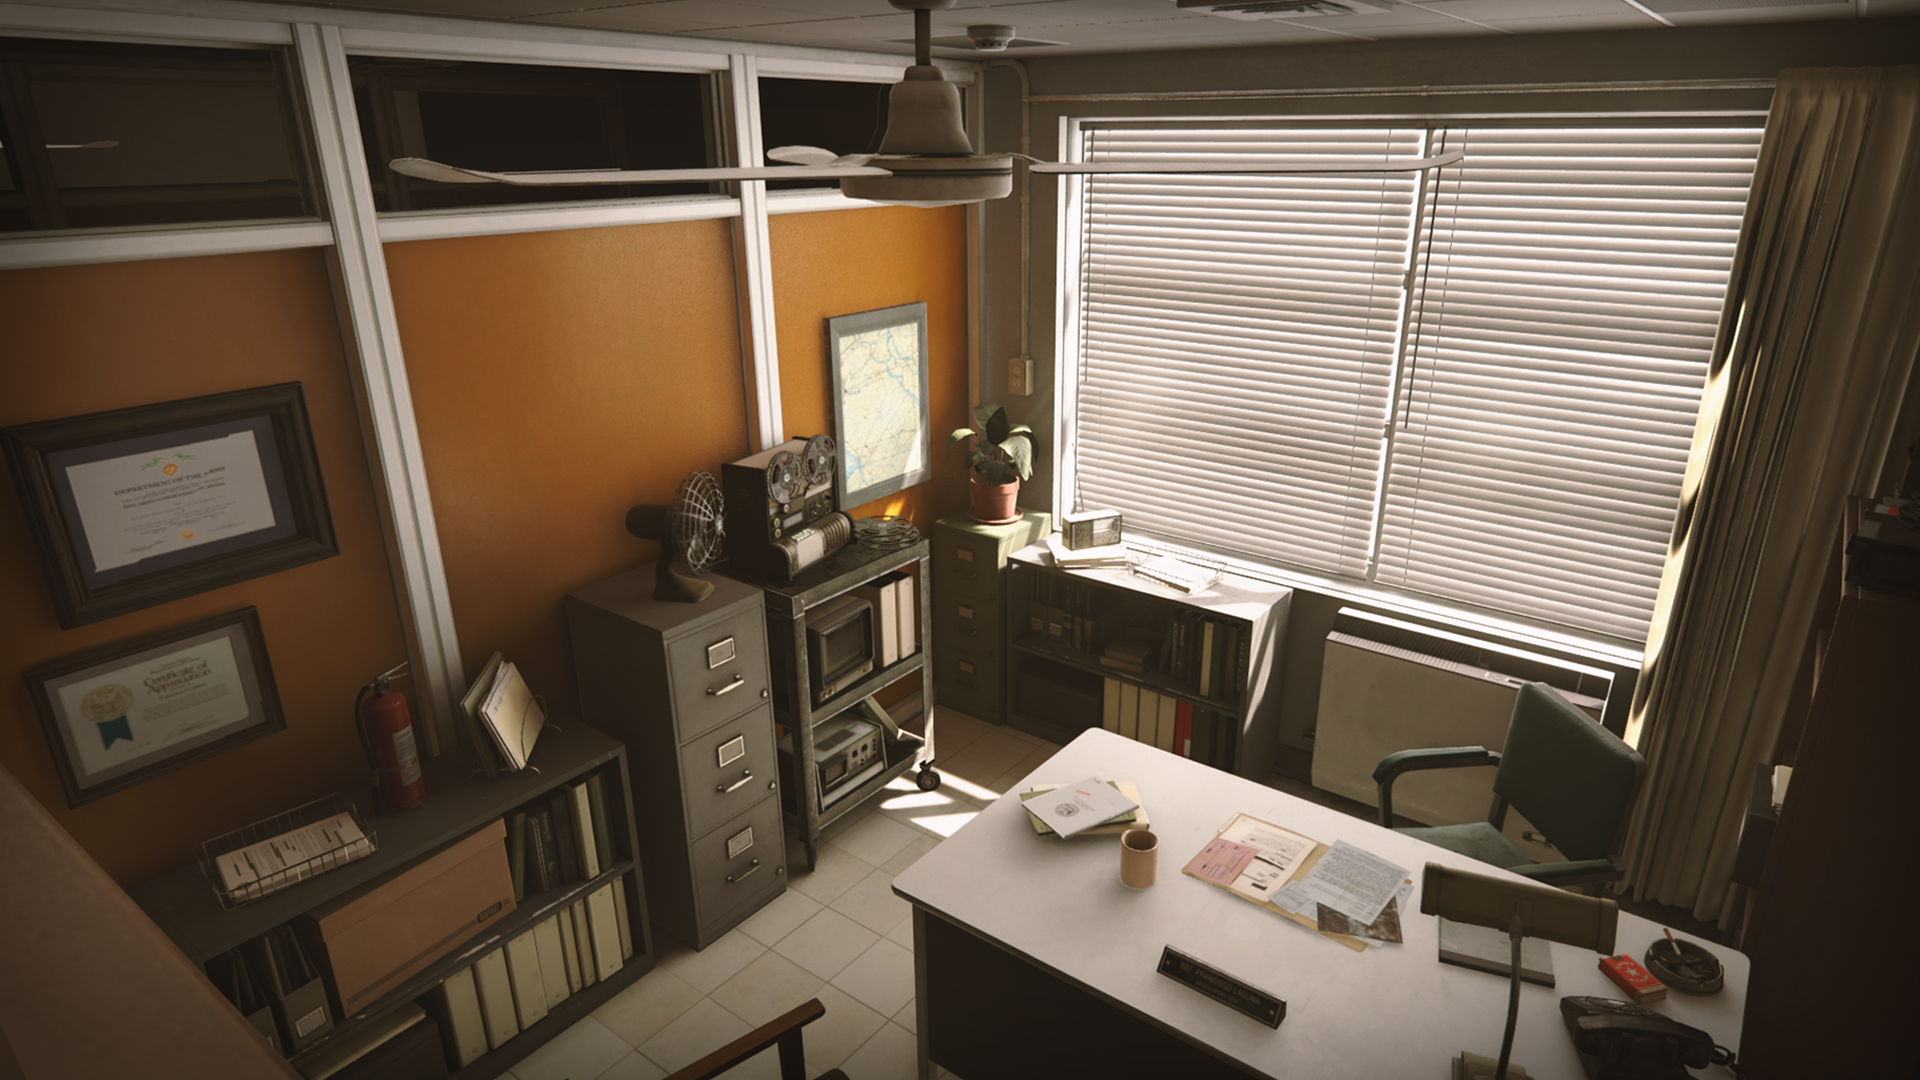 Merveilleux Retro Office Environment By Dekogon Studios In Environments   UE4  Marketplace